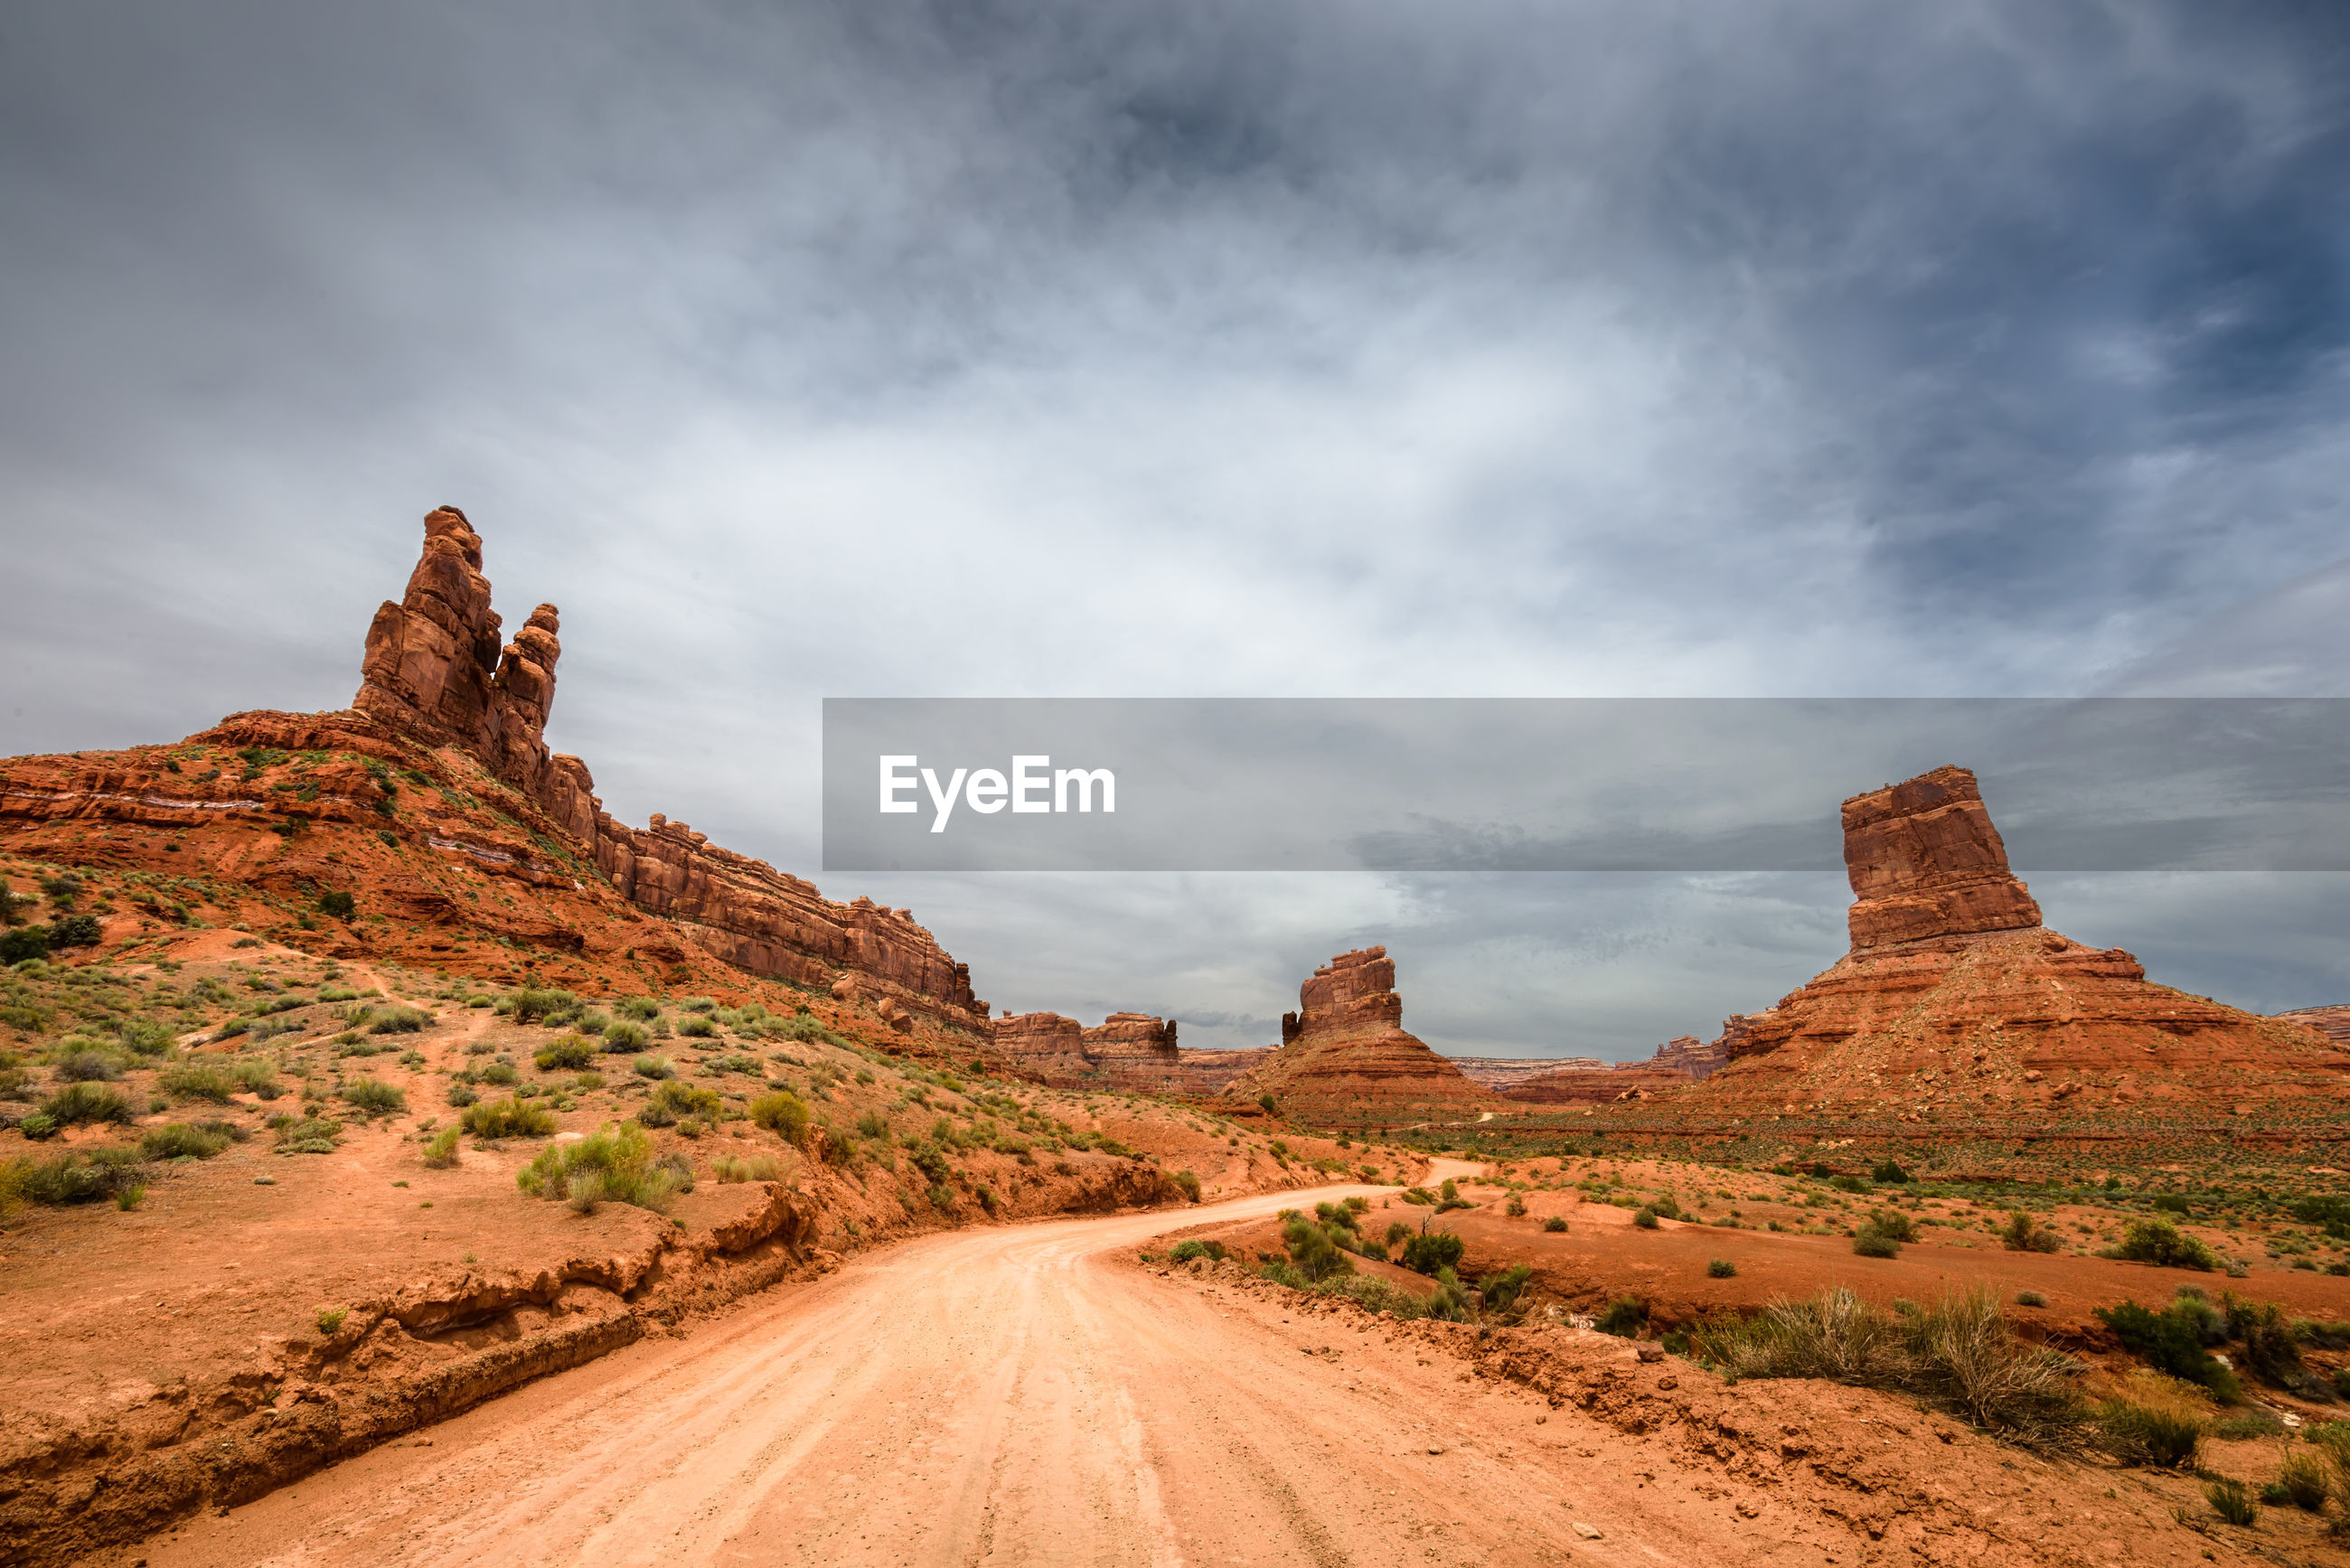 PANORAMIC VIEW OF ROCK FORMATIONS ON ROAD AGAINST SKY